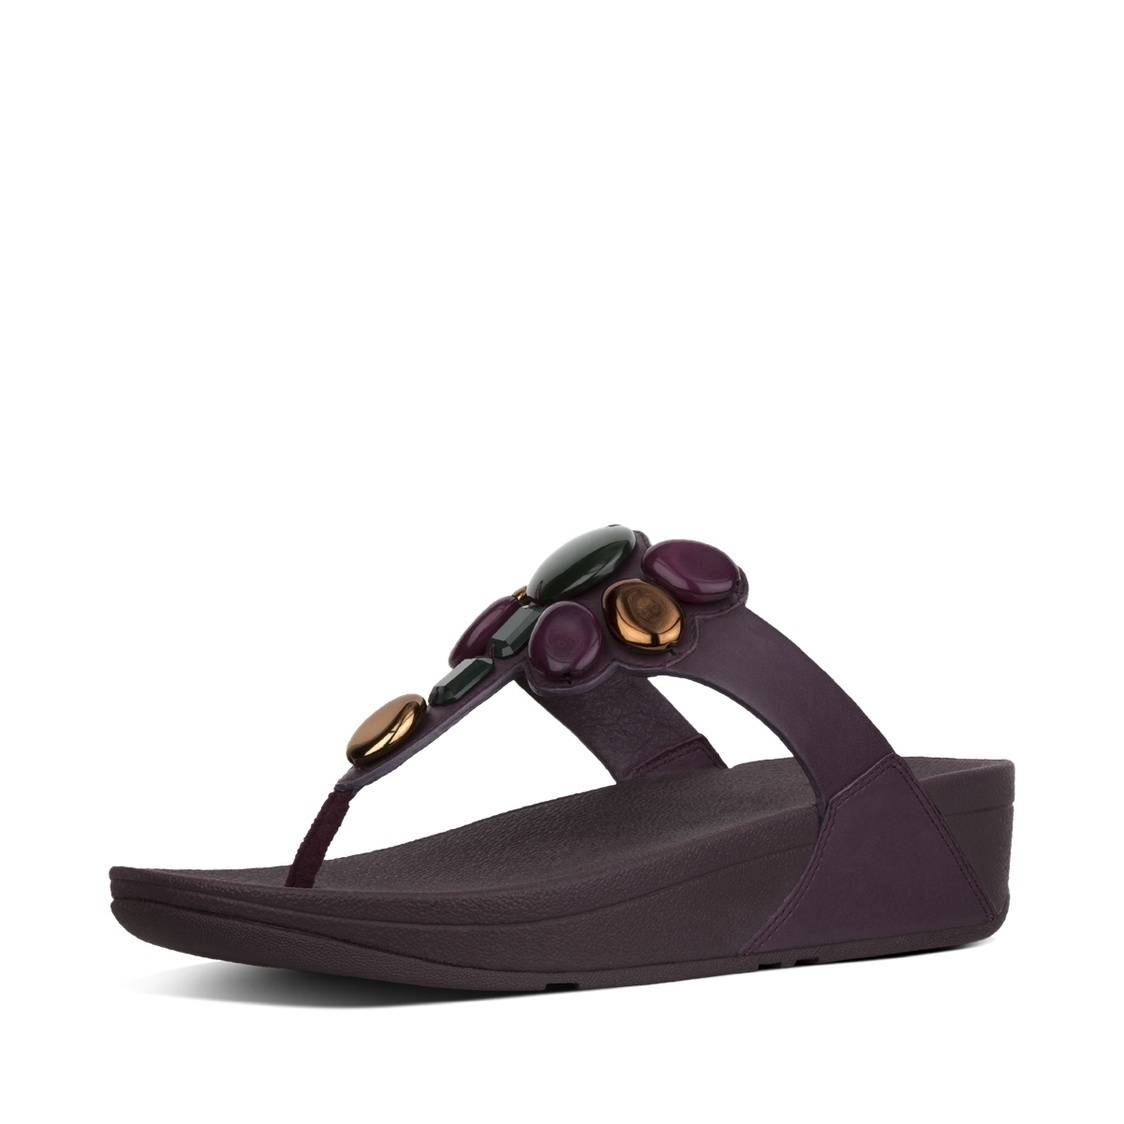 Honeybee Leather Toe-Thong Sandals